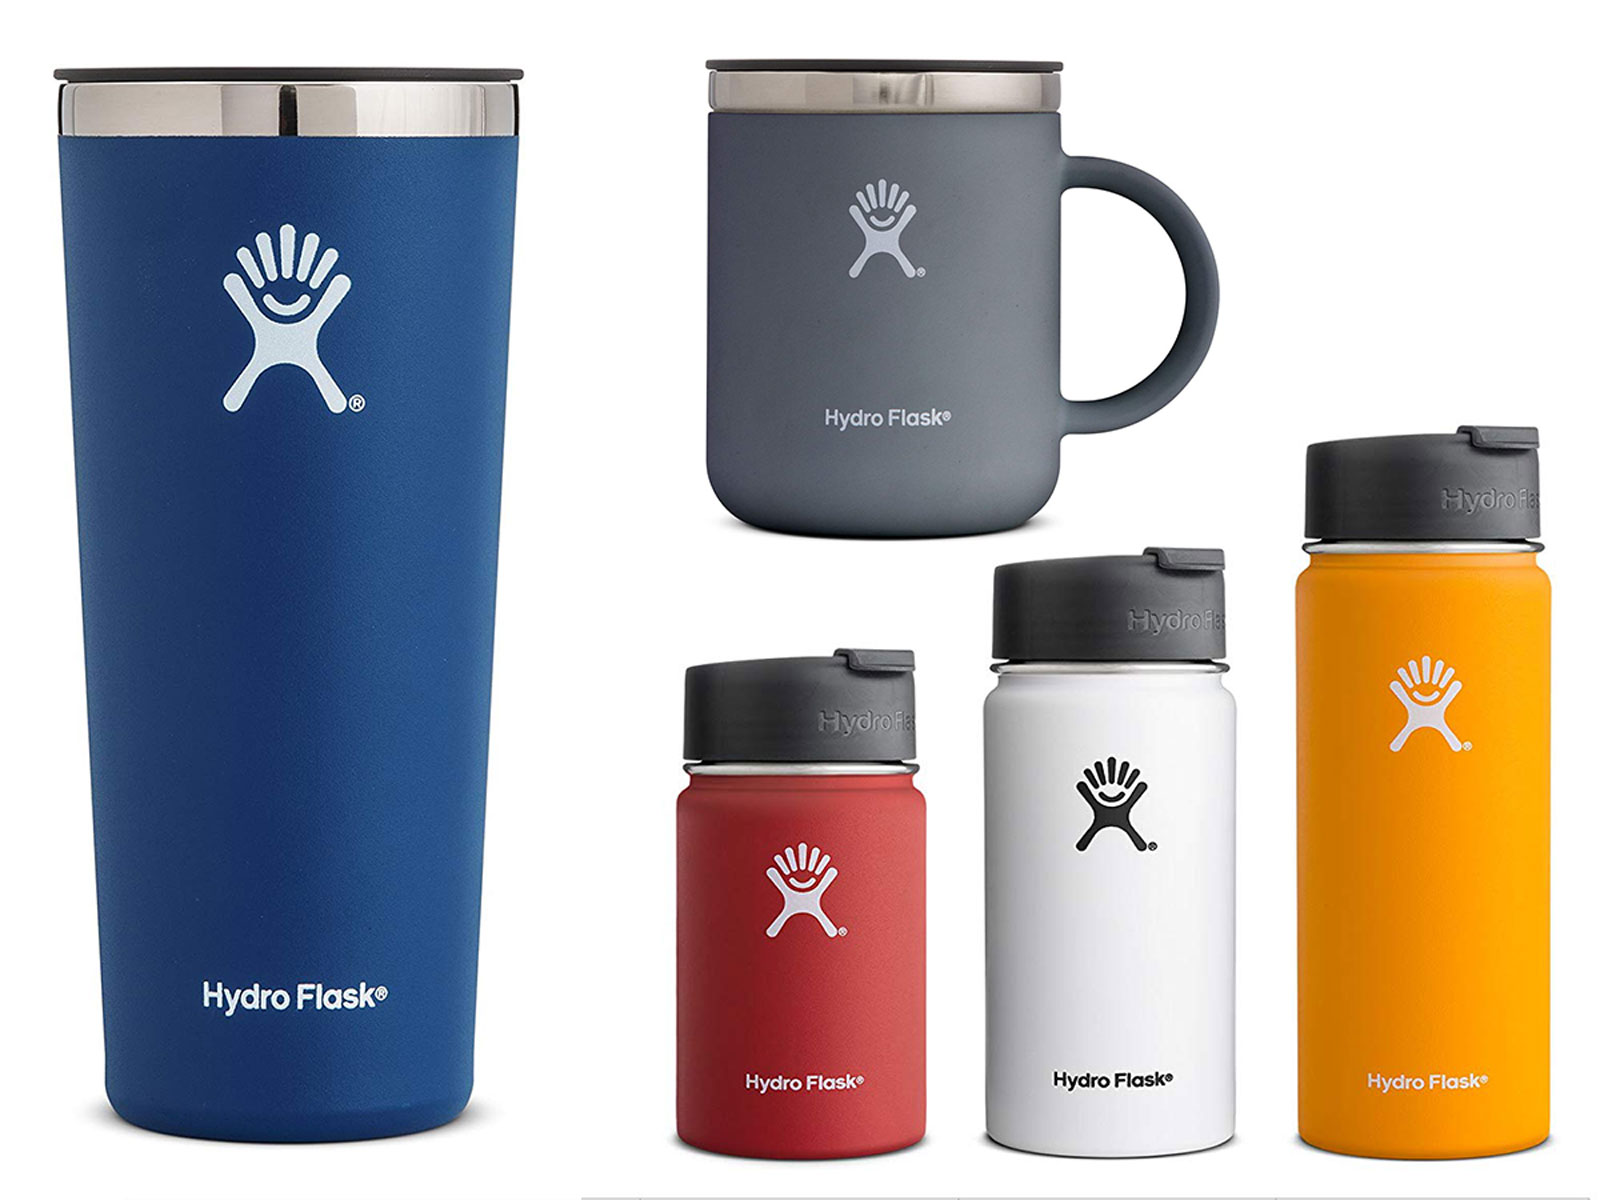 hydroflask coffee mugs